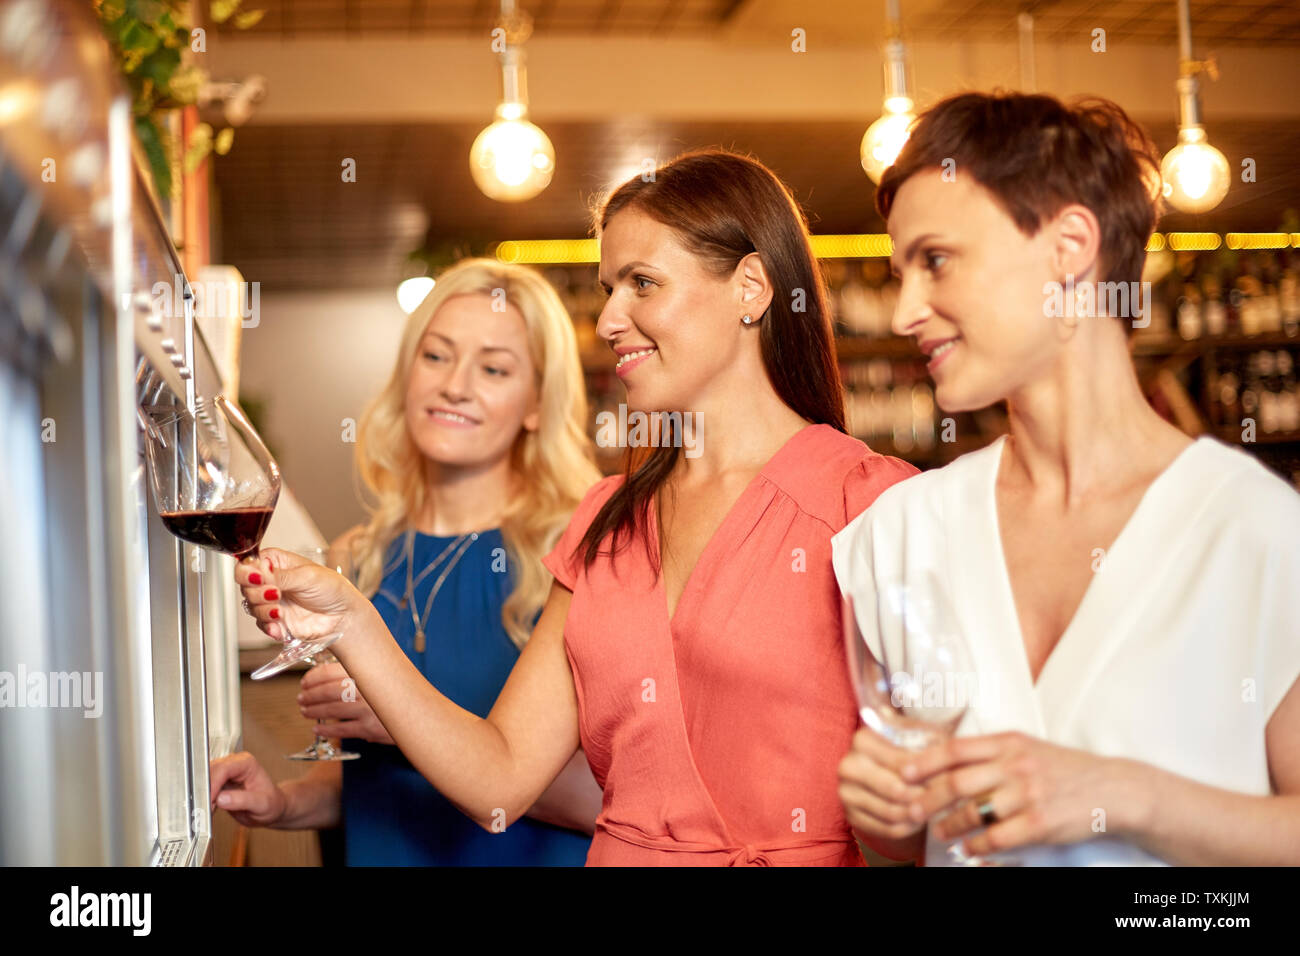 happy women pouring wine from dispenser at bar - Stock Image